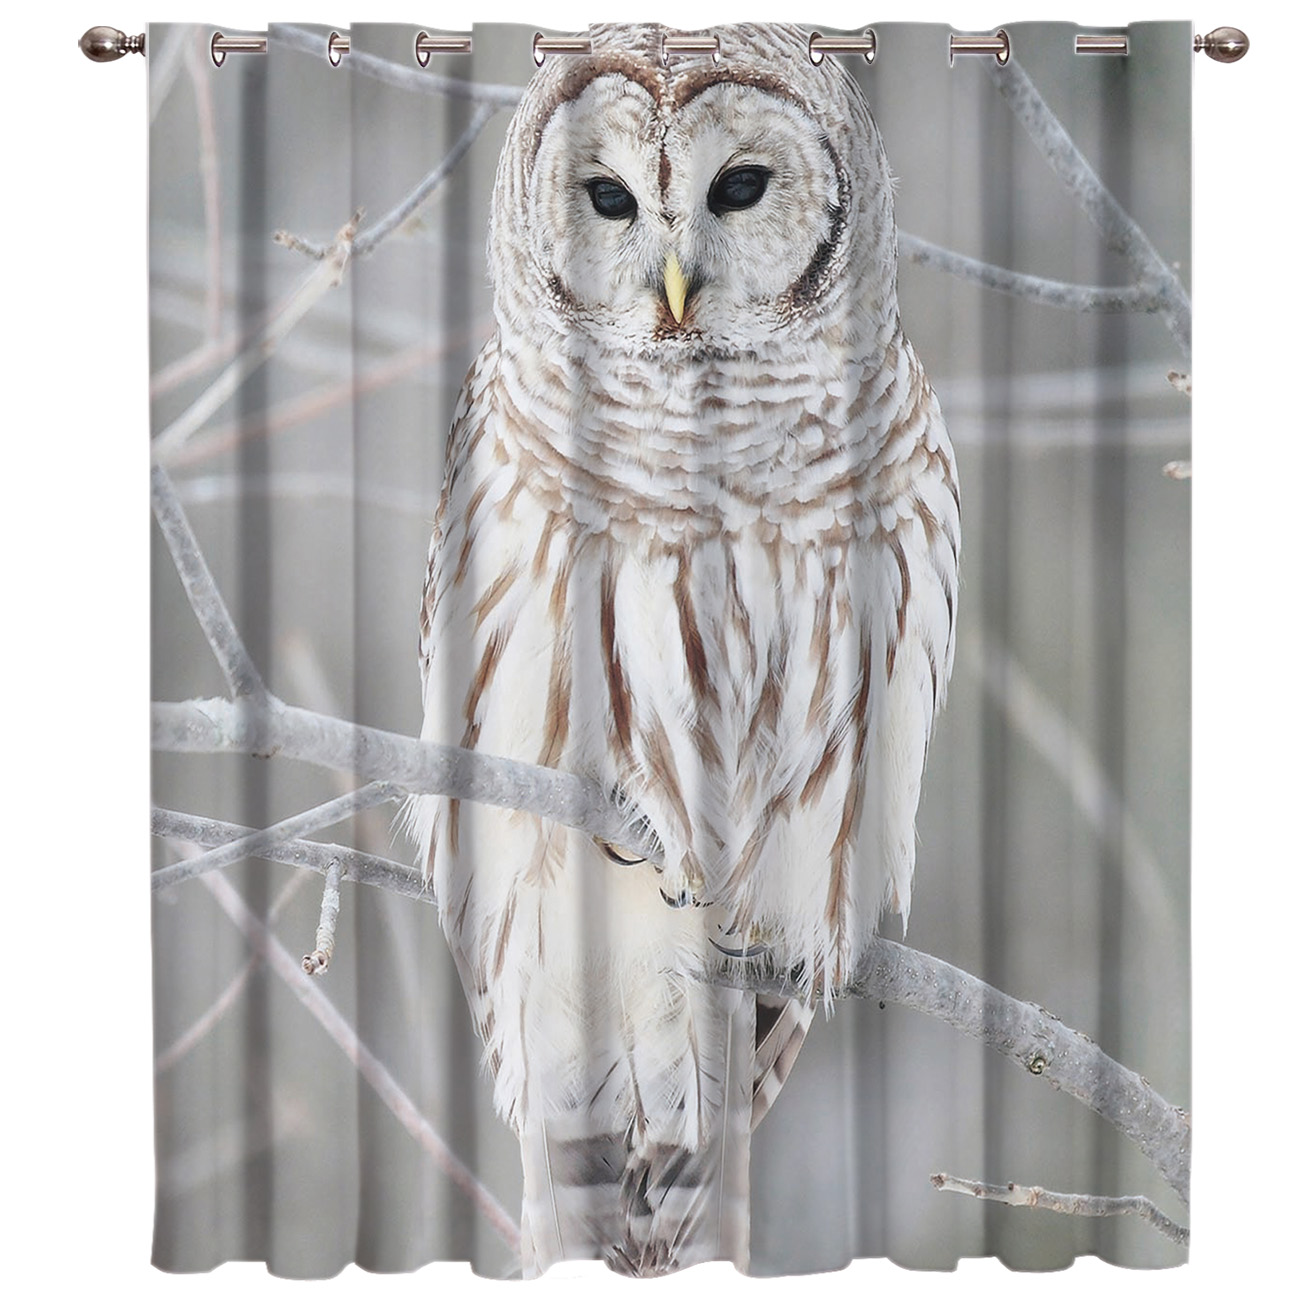 Winter Owl Standing On The Branches Gray Window Curtains Dark Curtain Lights Bedroom Kitchen Indoor Fabric Decor Swag Window